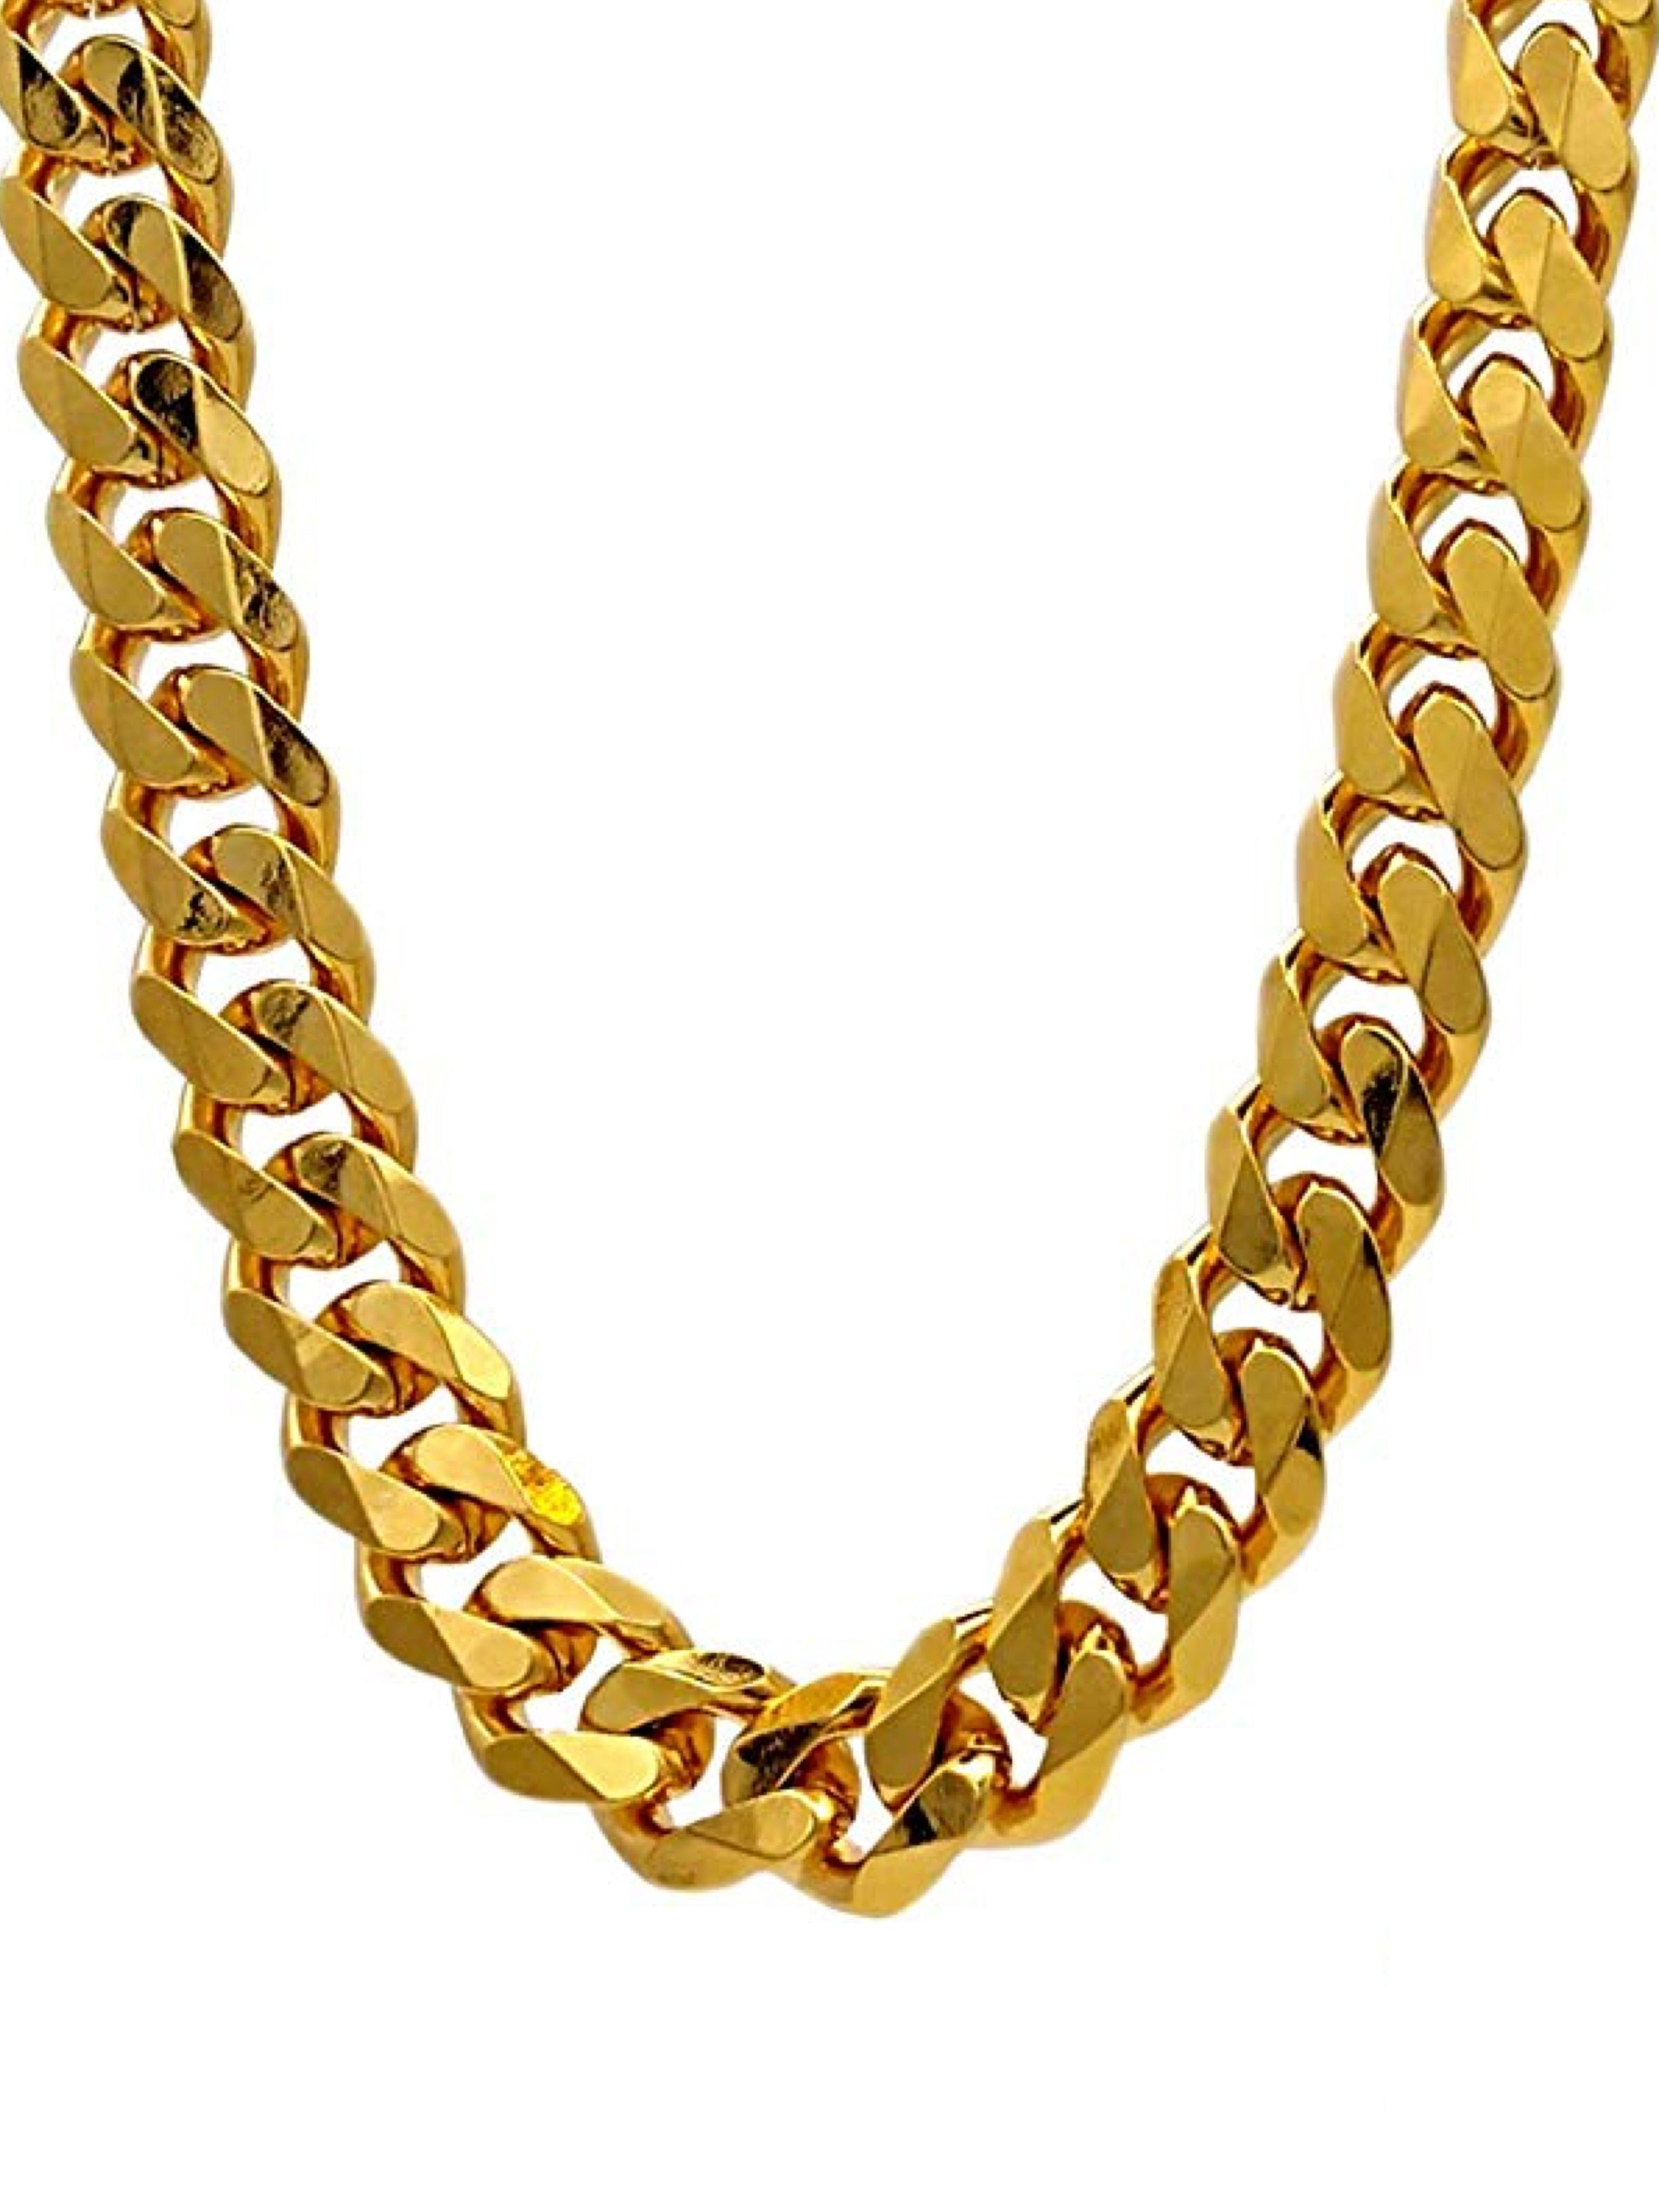 18k Gold Cable Necklace